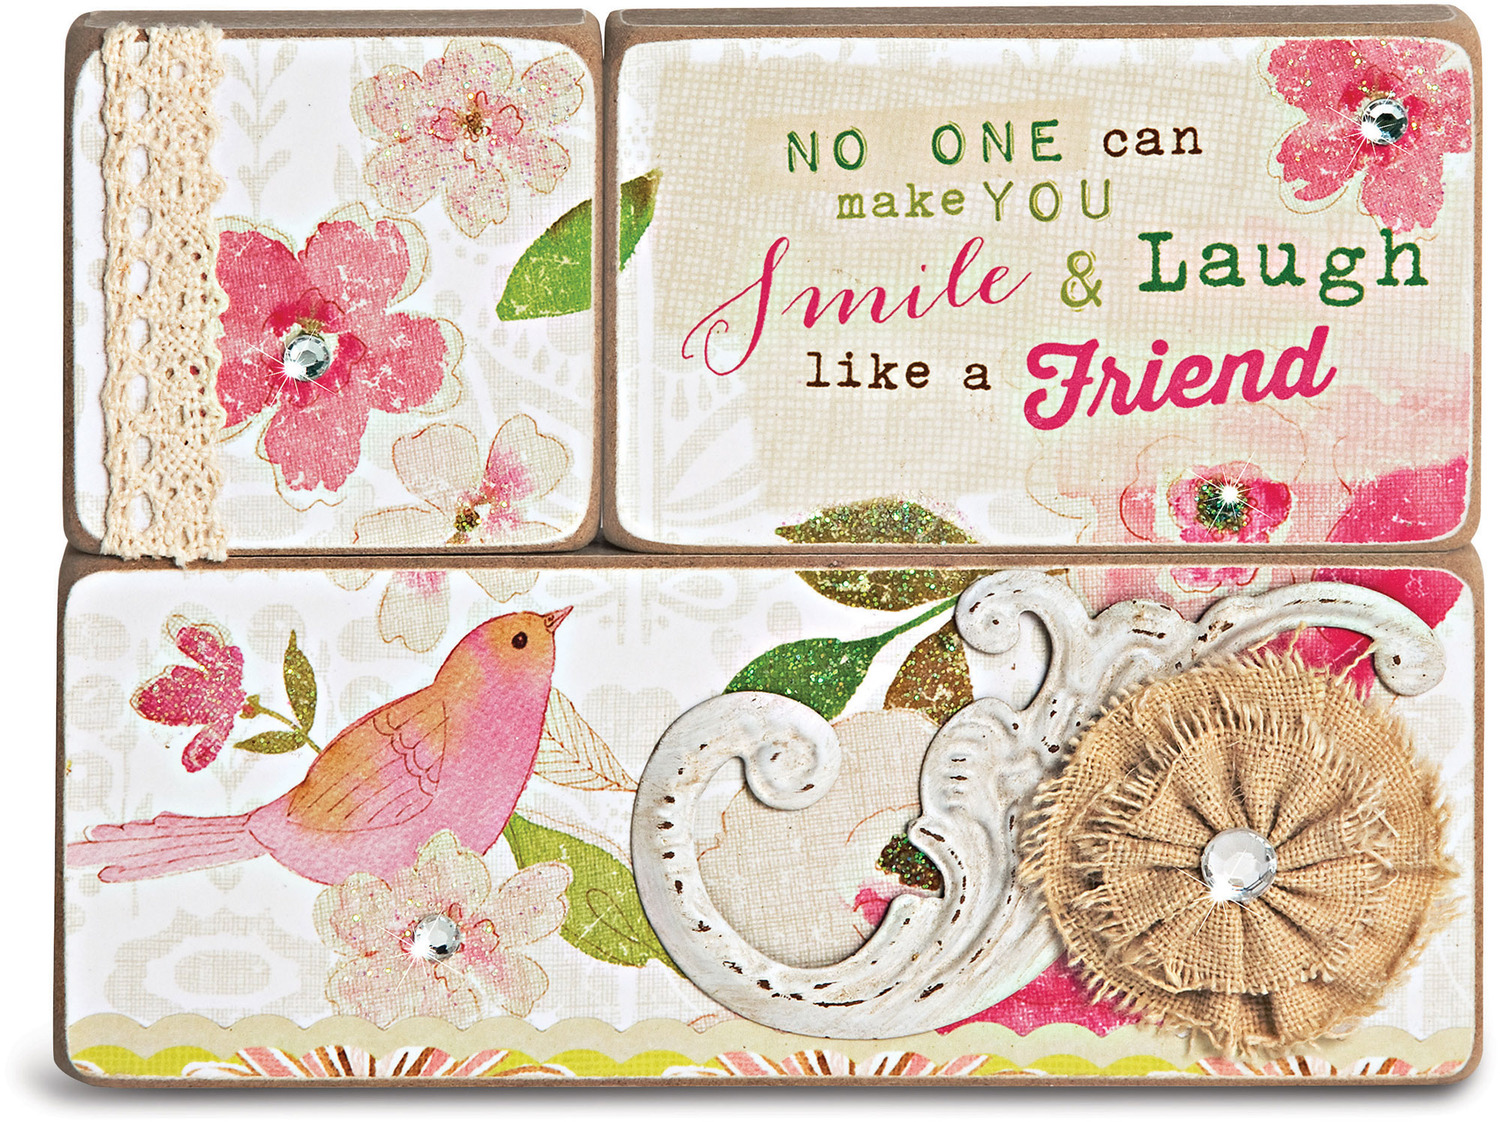 Friends by Vintage by Stephanie Ryan - Friends - 3 Piece Plaque Set